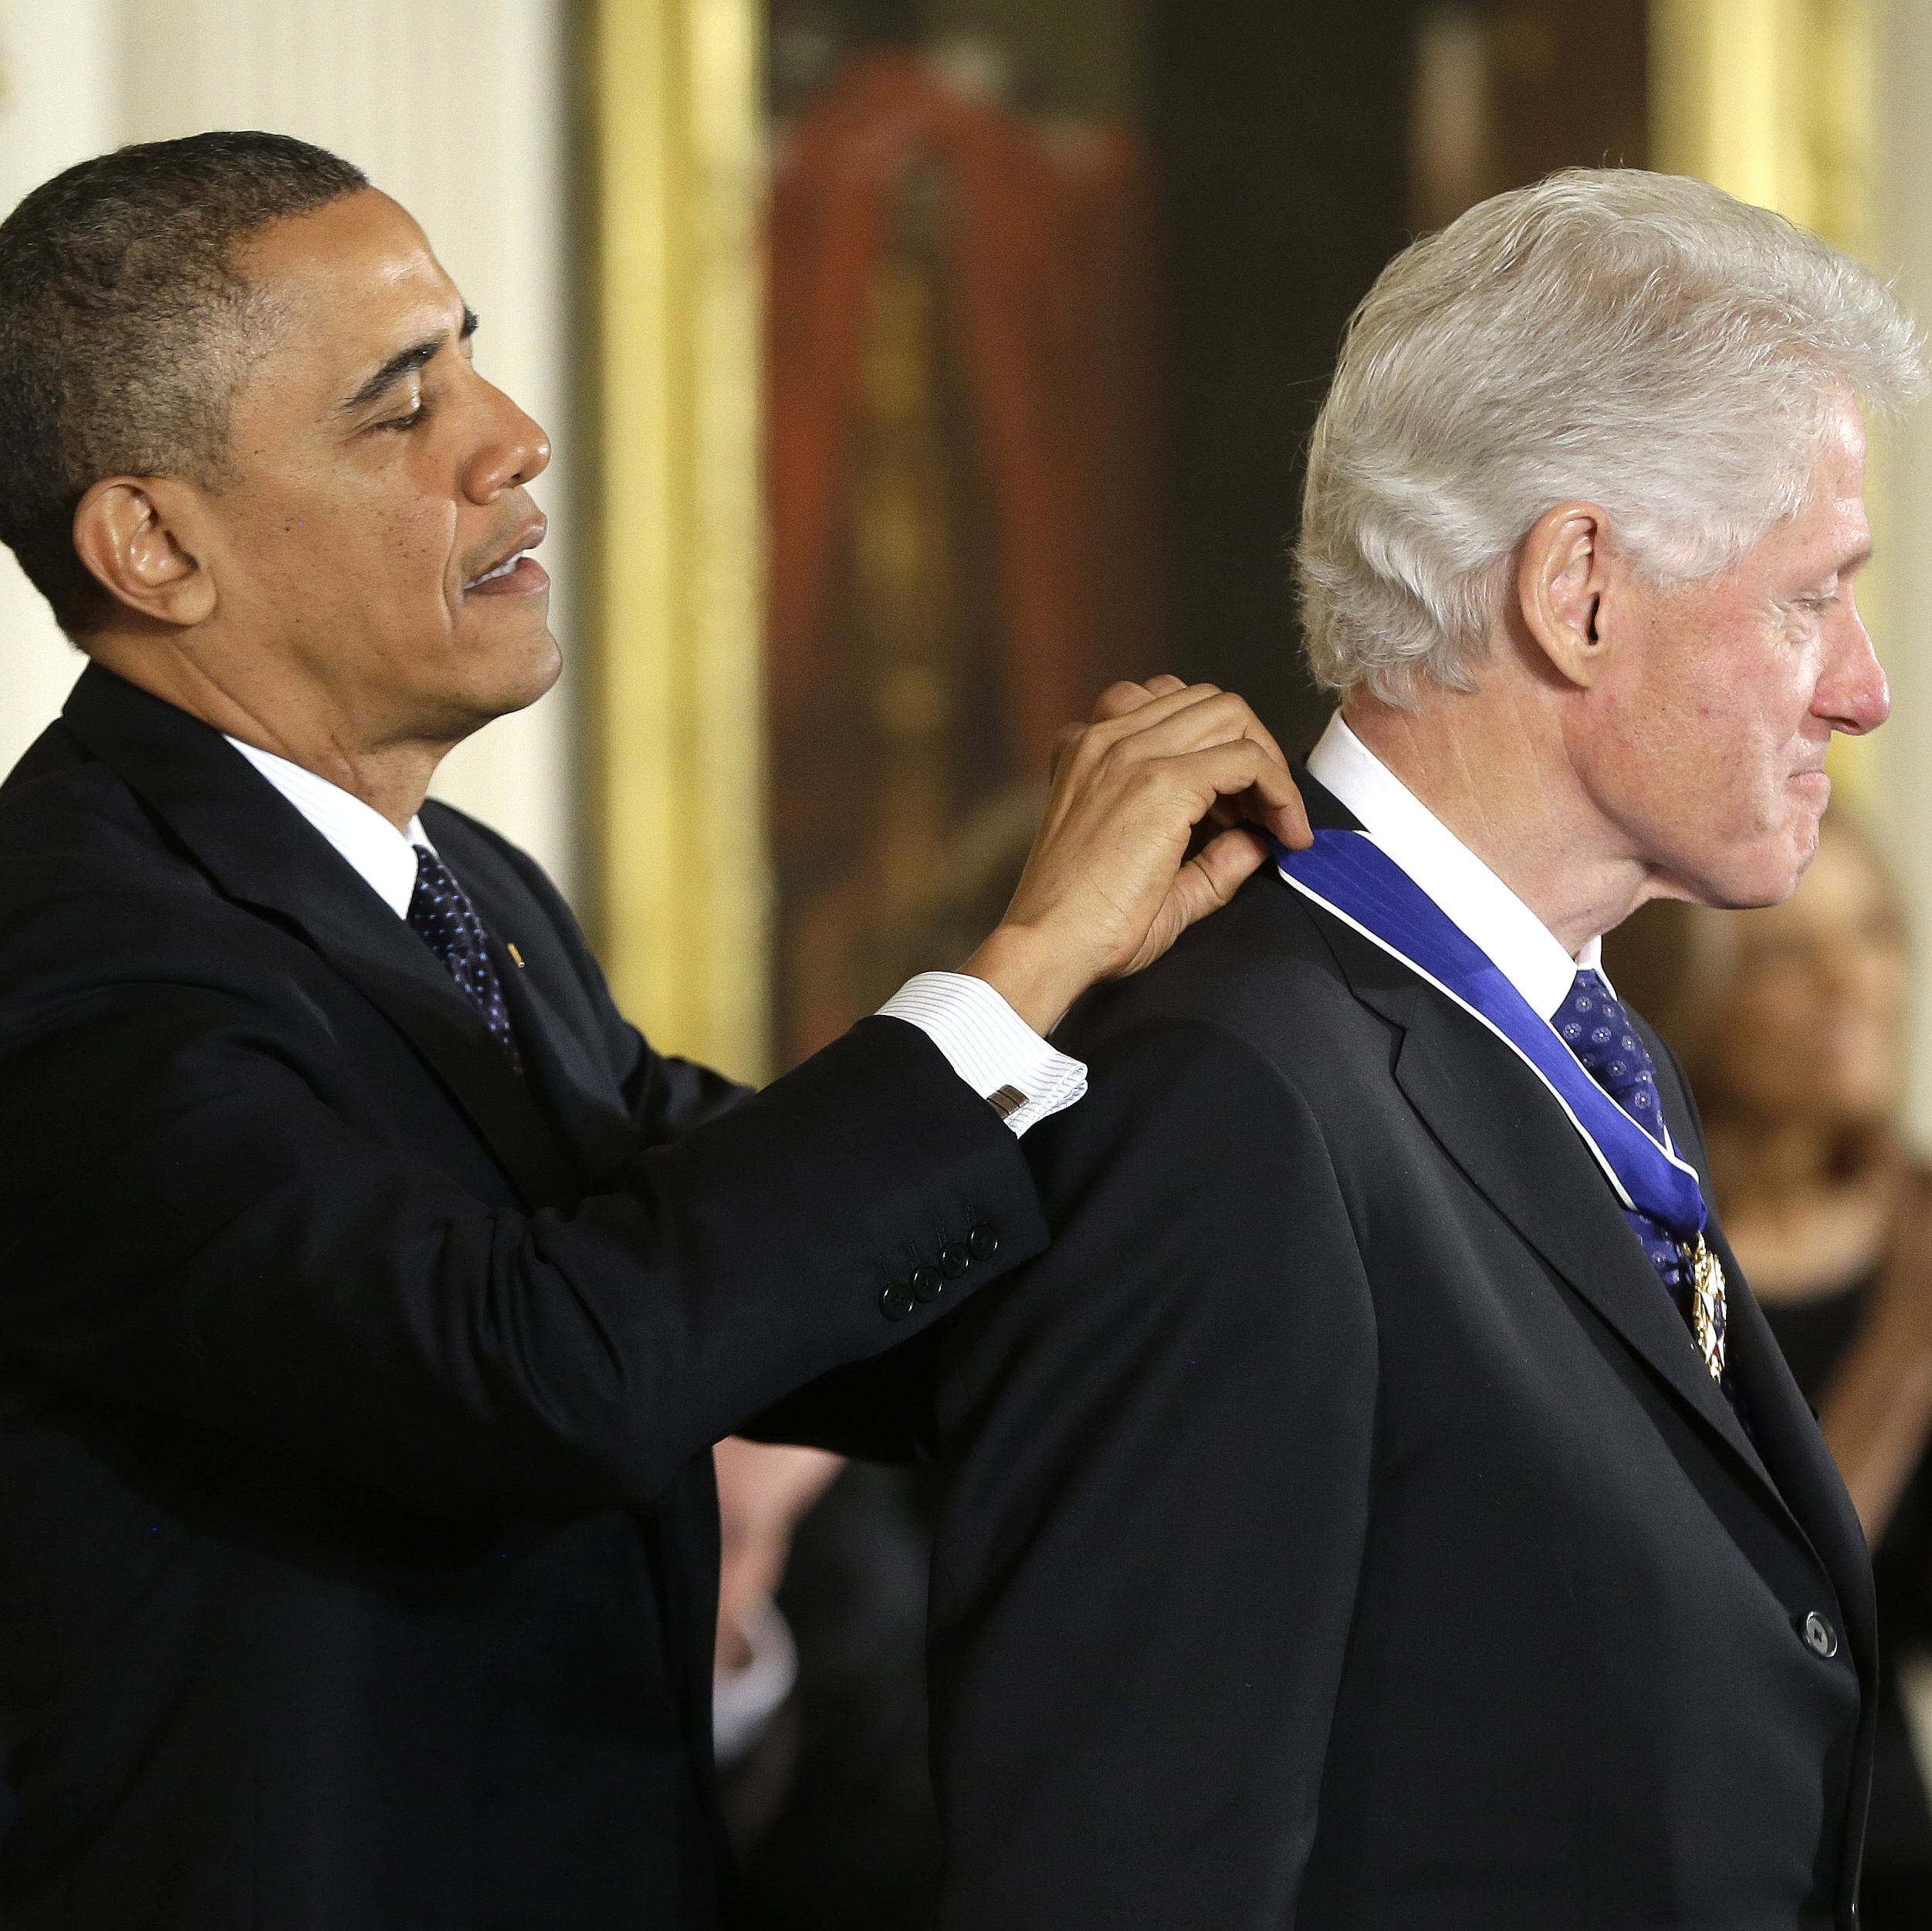 From one commander to another: President Obama awards former President Bill Clinton the Presidential Medal of Freedom.